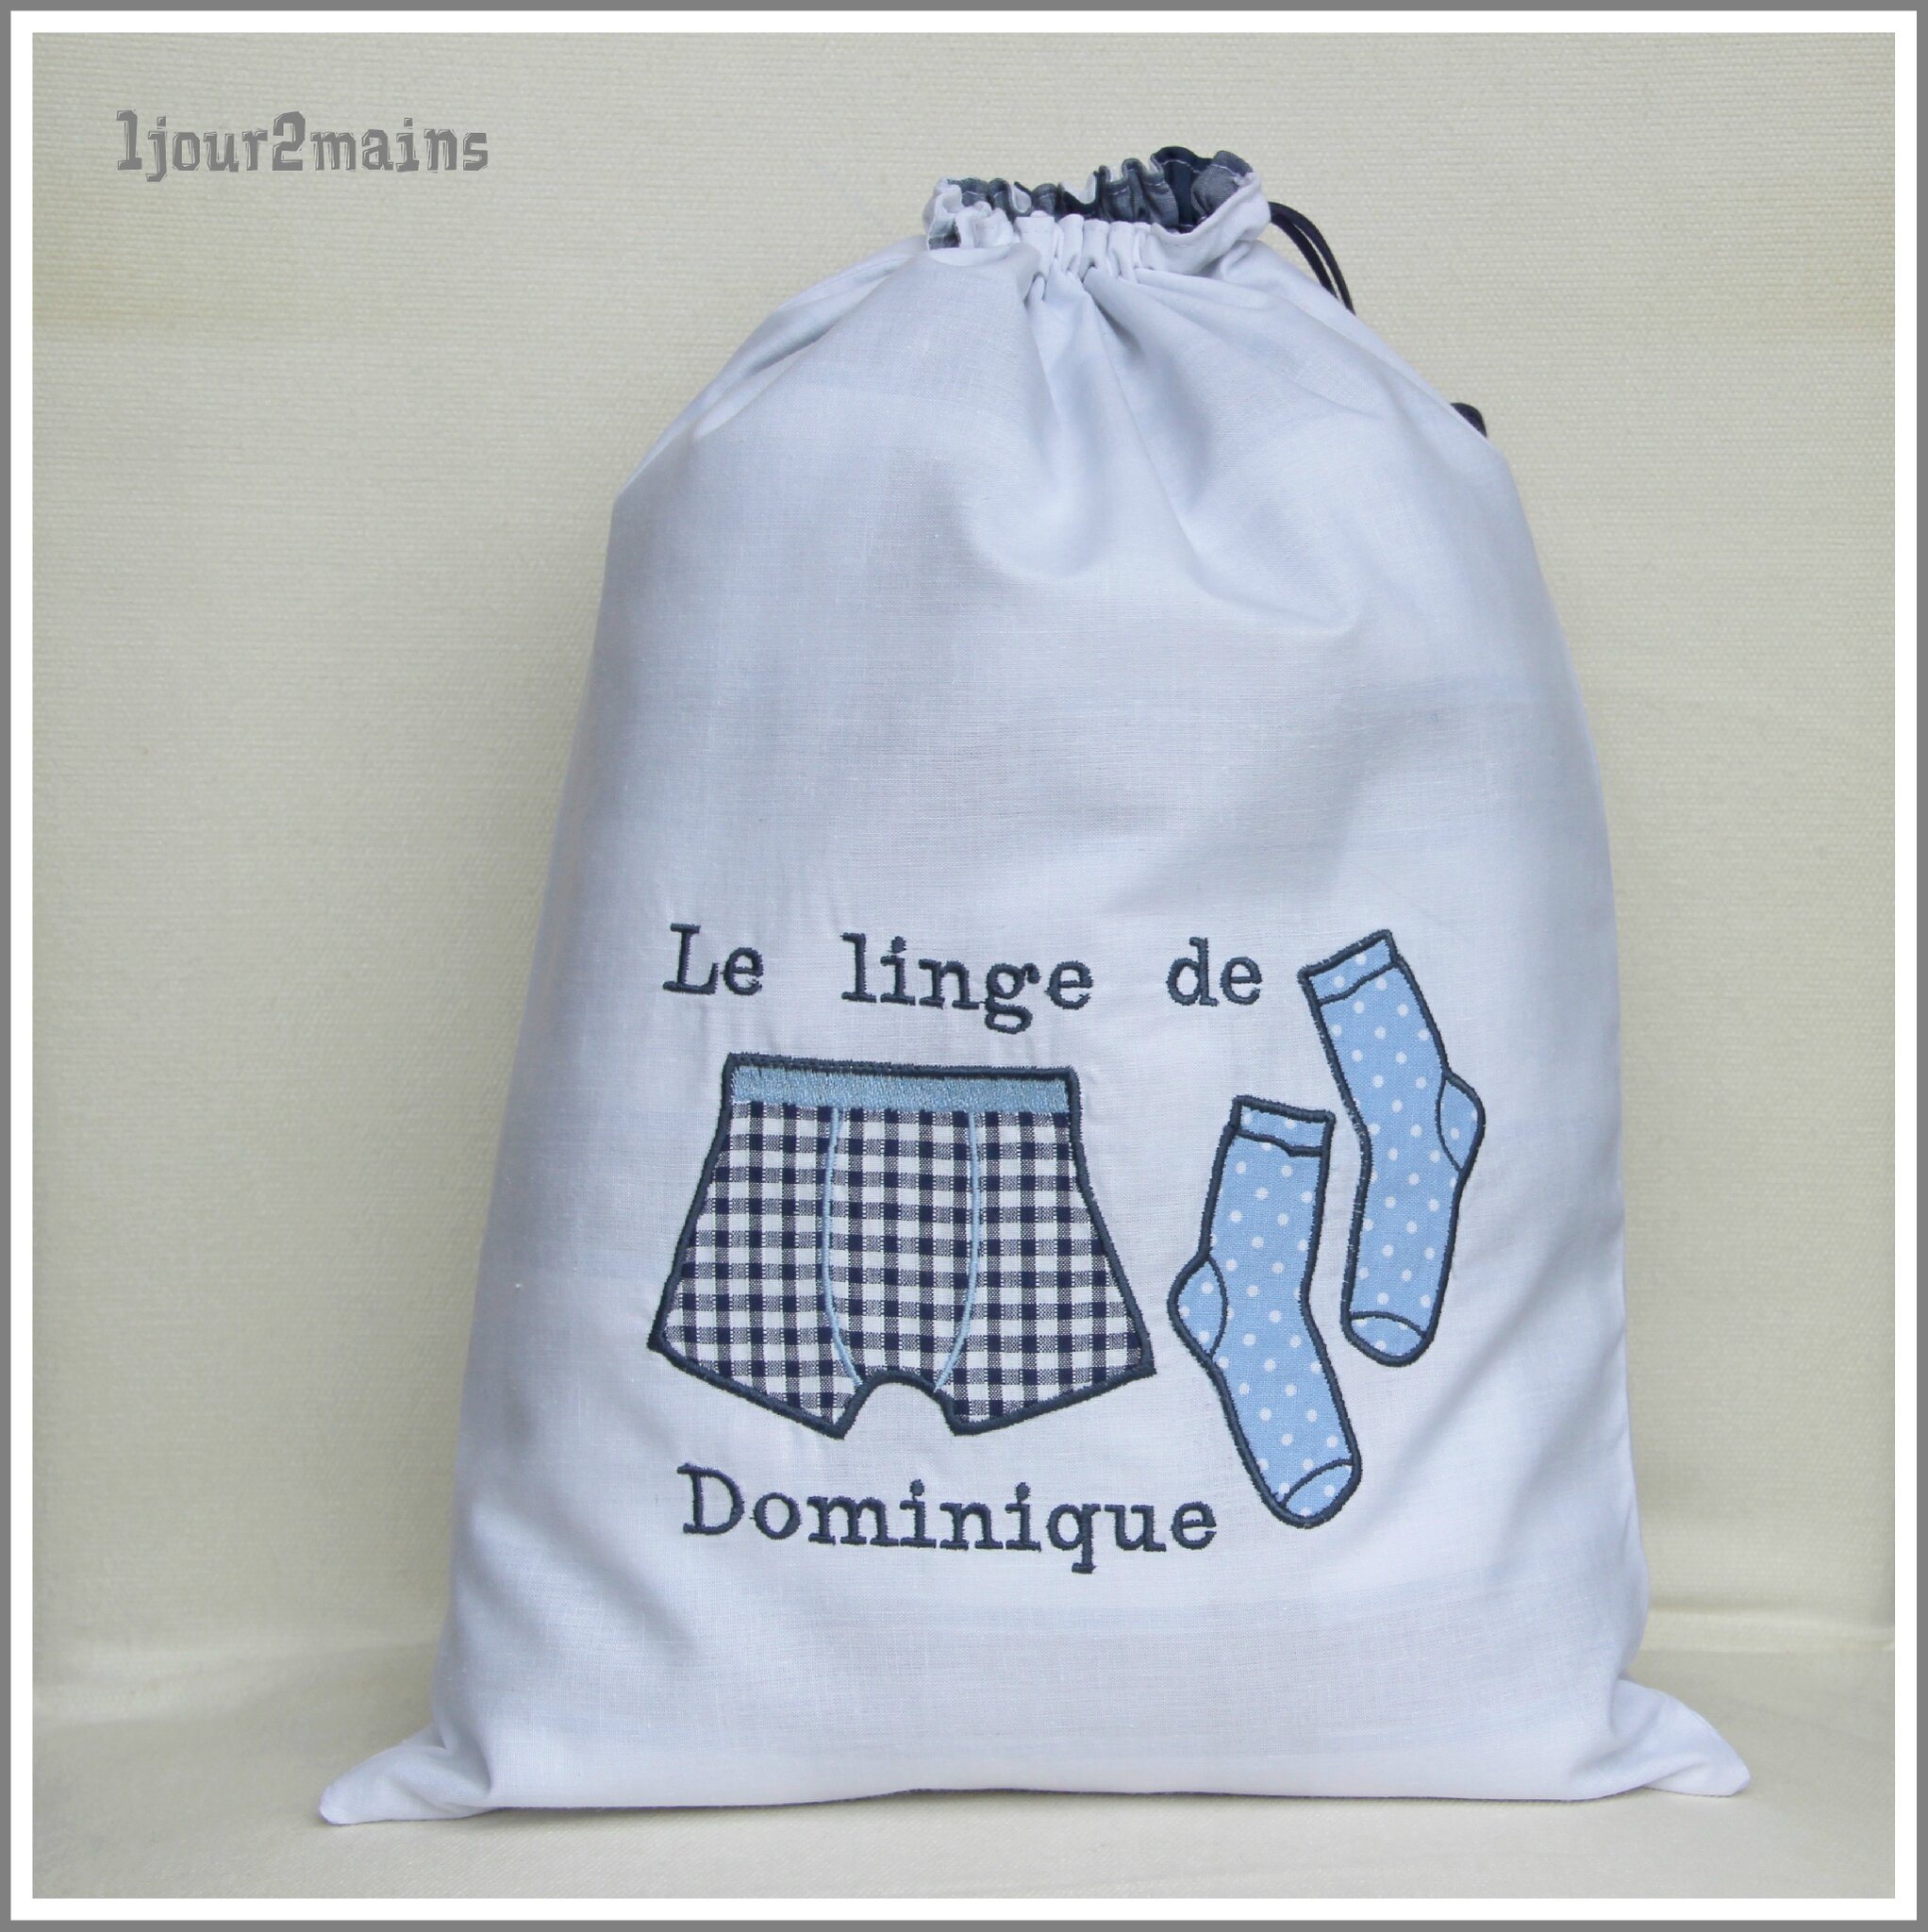 sac linge cale on chaussette dominique photo de sac. Black Bedroom Furniture Sets. Home Design Ideas